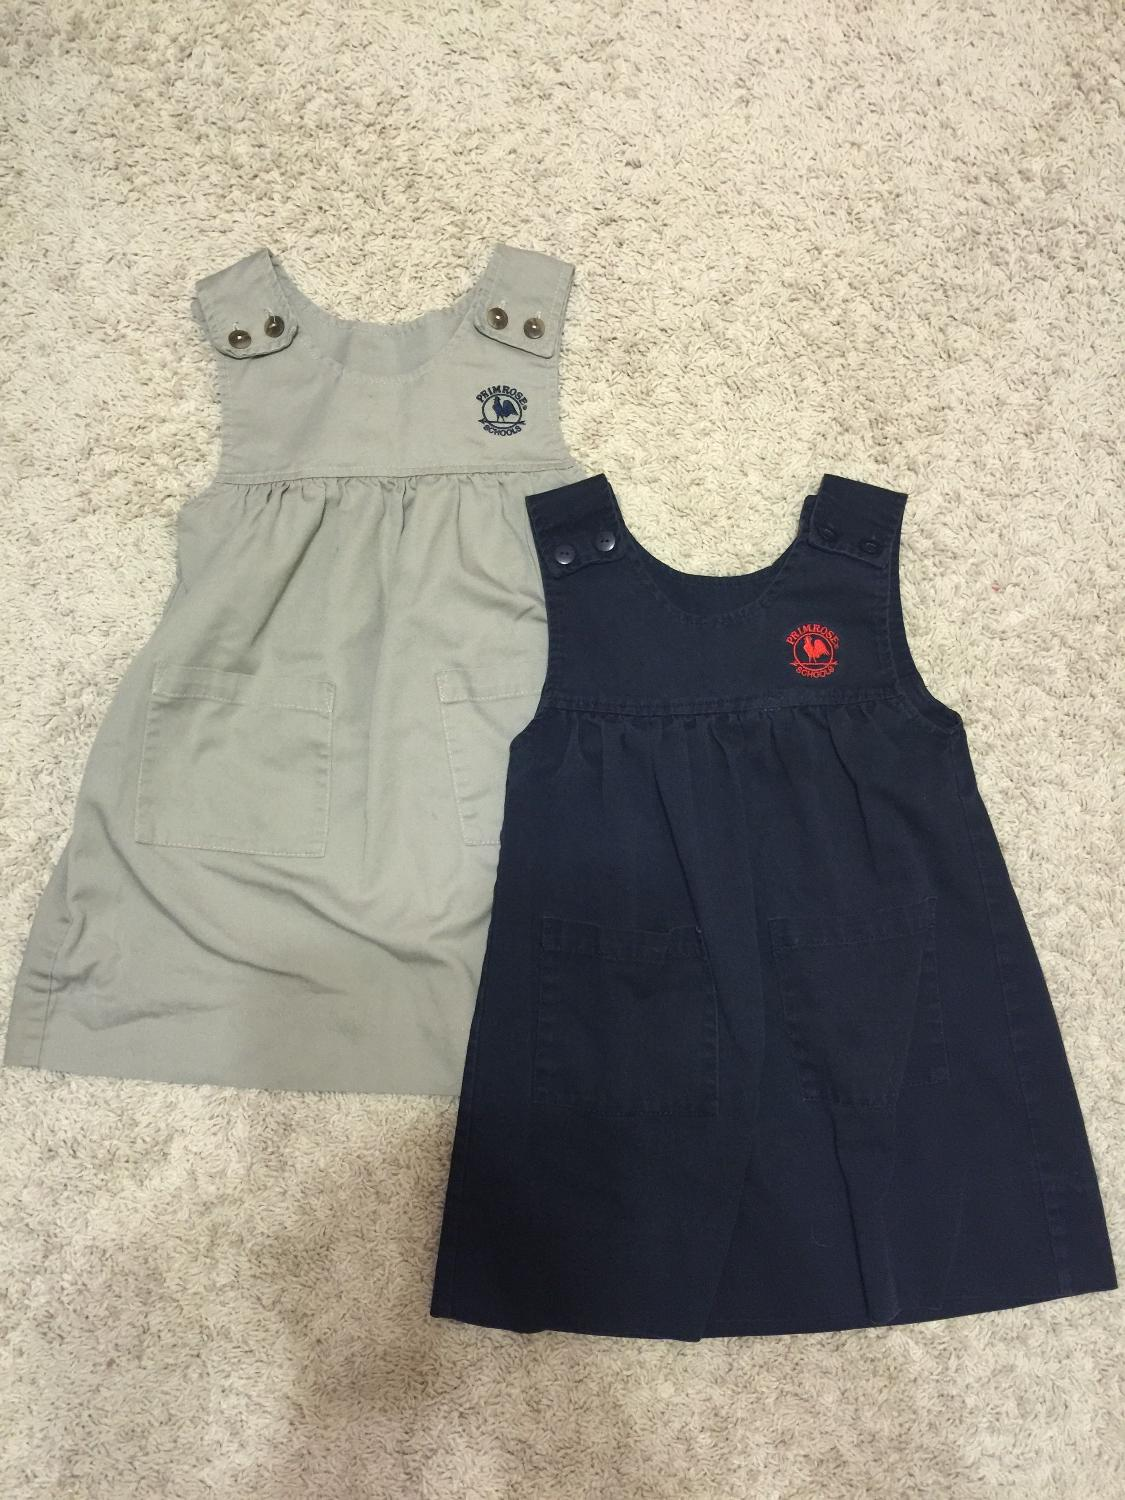 Jun 17,  · Primrose Uniform Swap/Sale. Public · Hosted by Primrose School of Prosper. Interested. clock. Friday, June 17, at PM – PM CDT. More than a year ago. pin. Primrose School of Prosper. La Cima Blvd, Prosper, Texas Show Map. Hide Map.